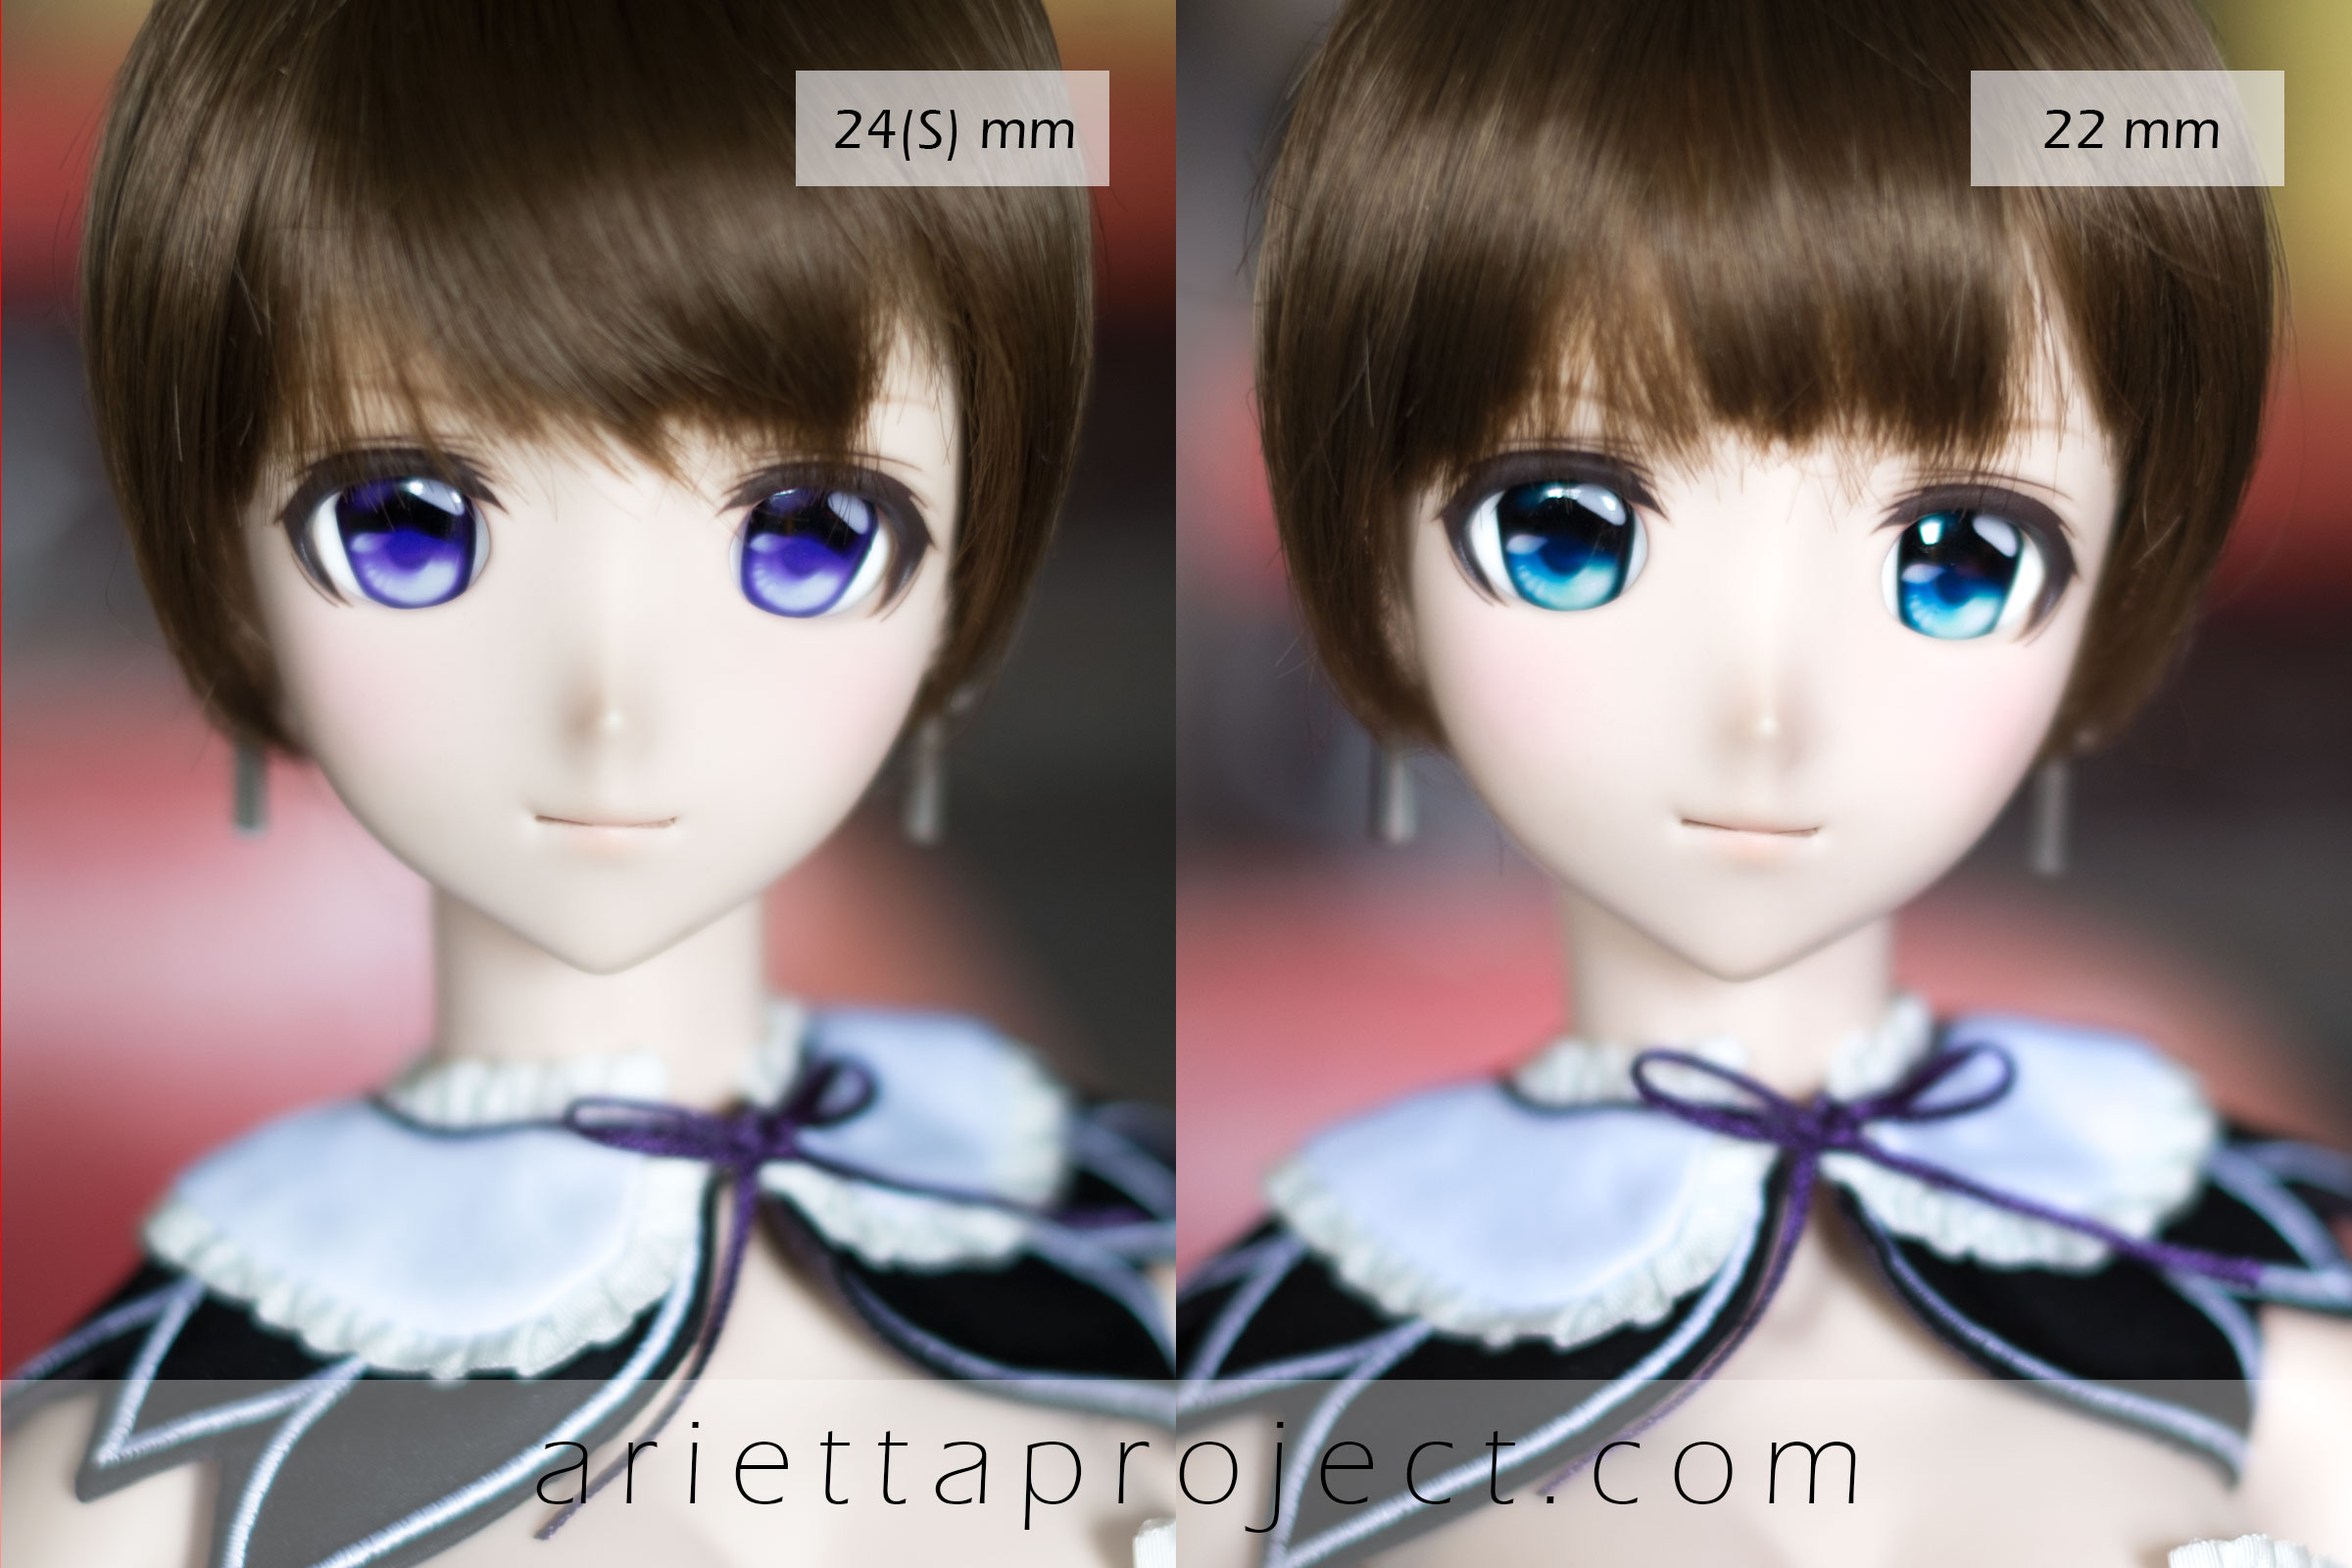 AP 24(S)mm vs 22mm Eye Size